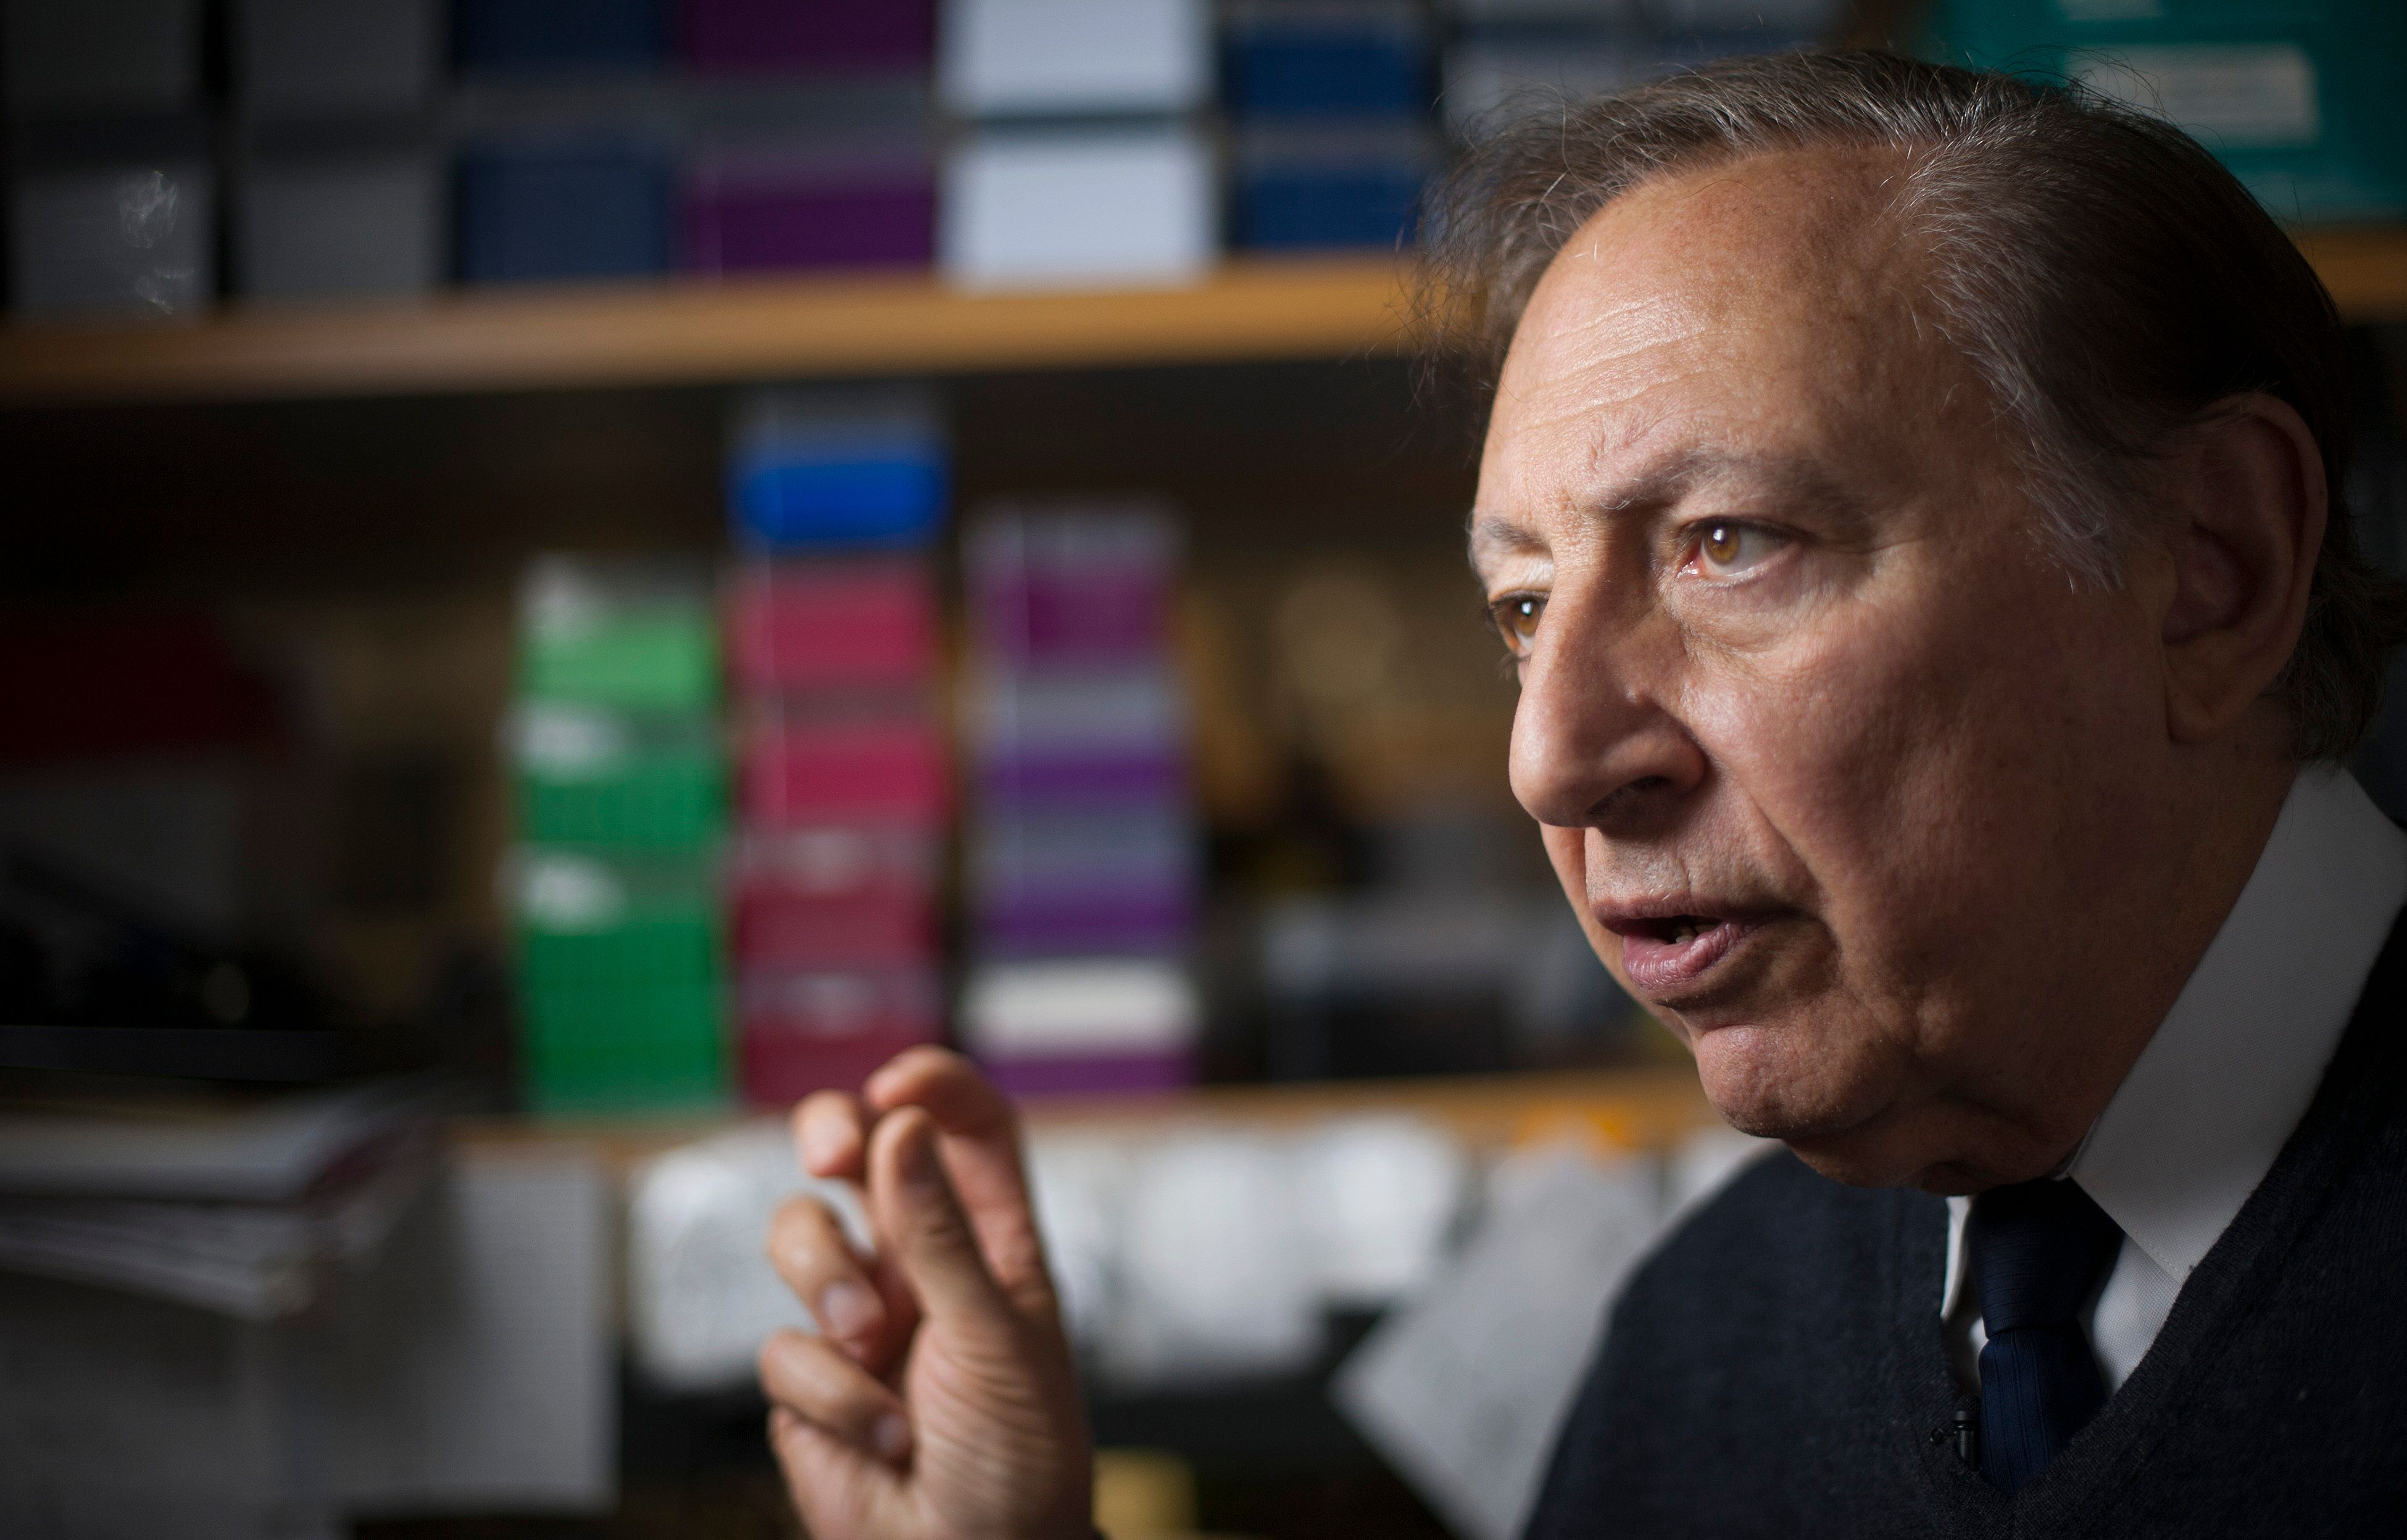 Dr. Robert Gallo may have found a vaccine that can beat HIV.